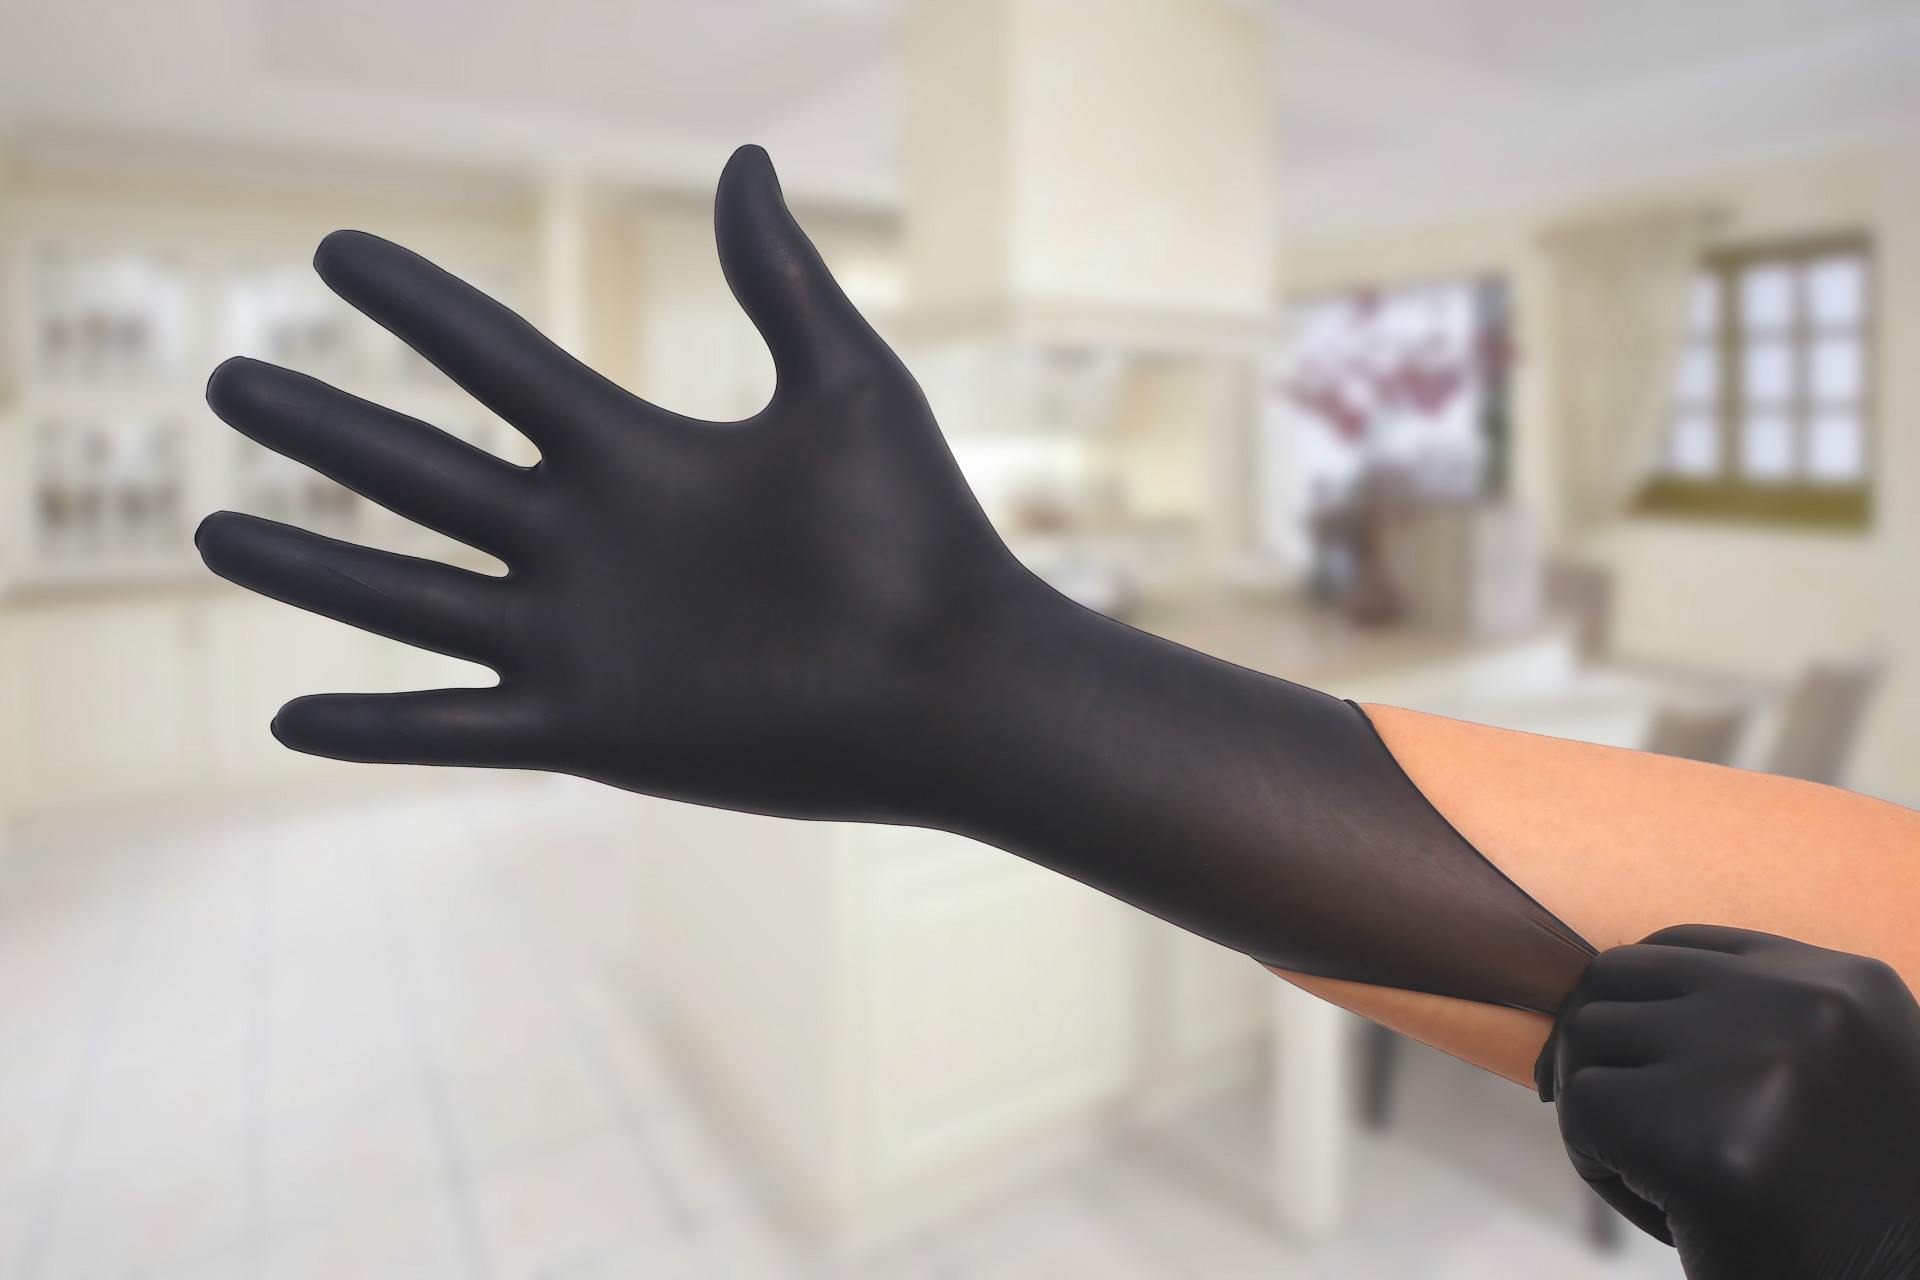 50 to100PCS Disposable Latex Gloves Latex And Anti Bacterial Medical Gloves for Virus and Flu Protection 8